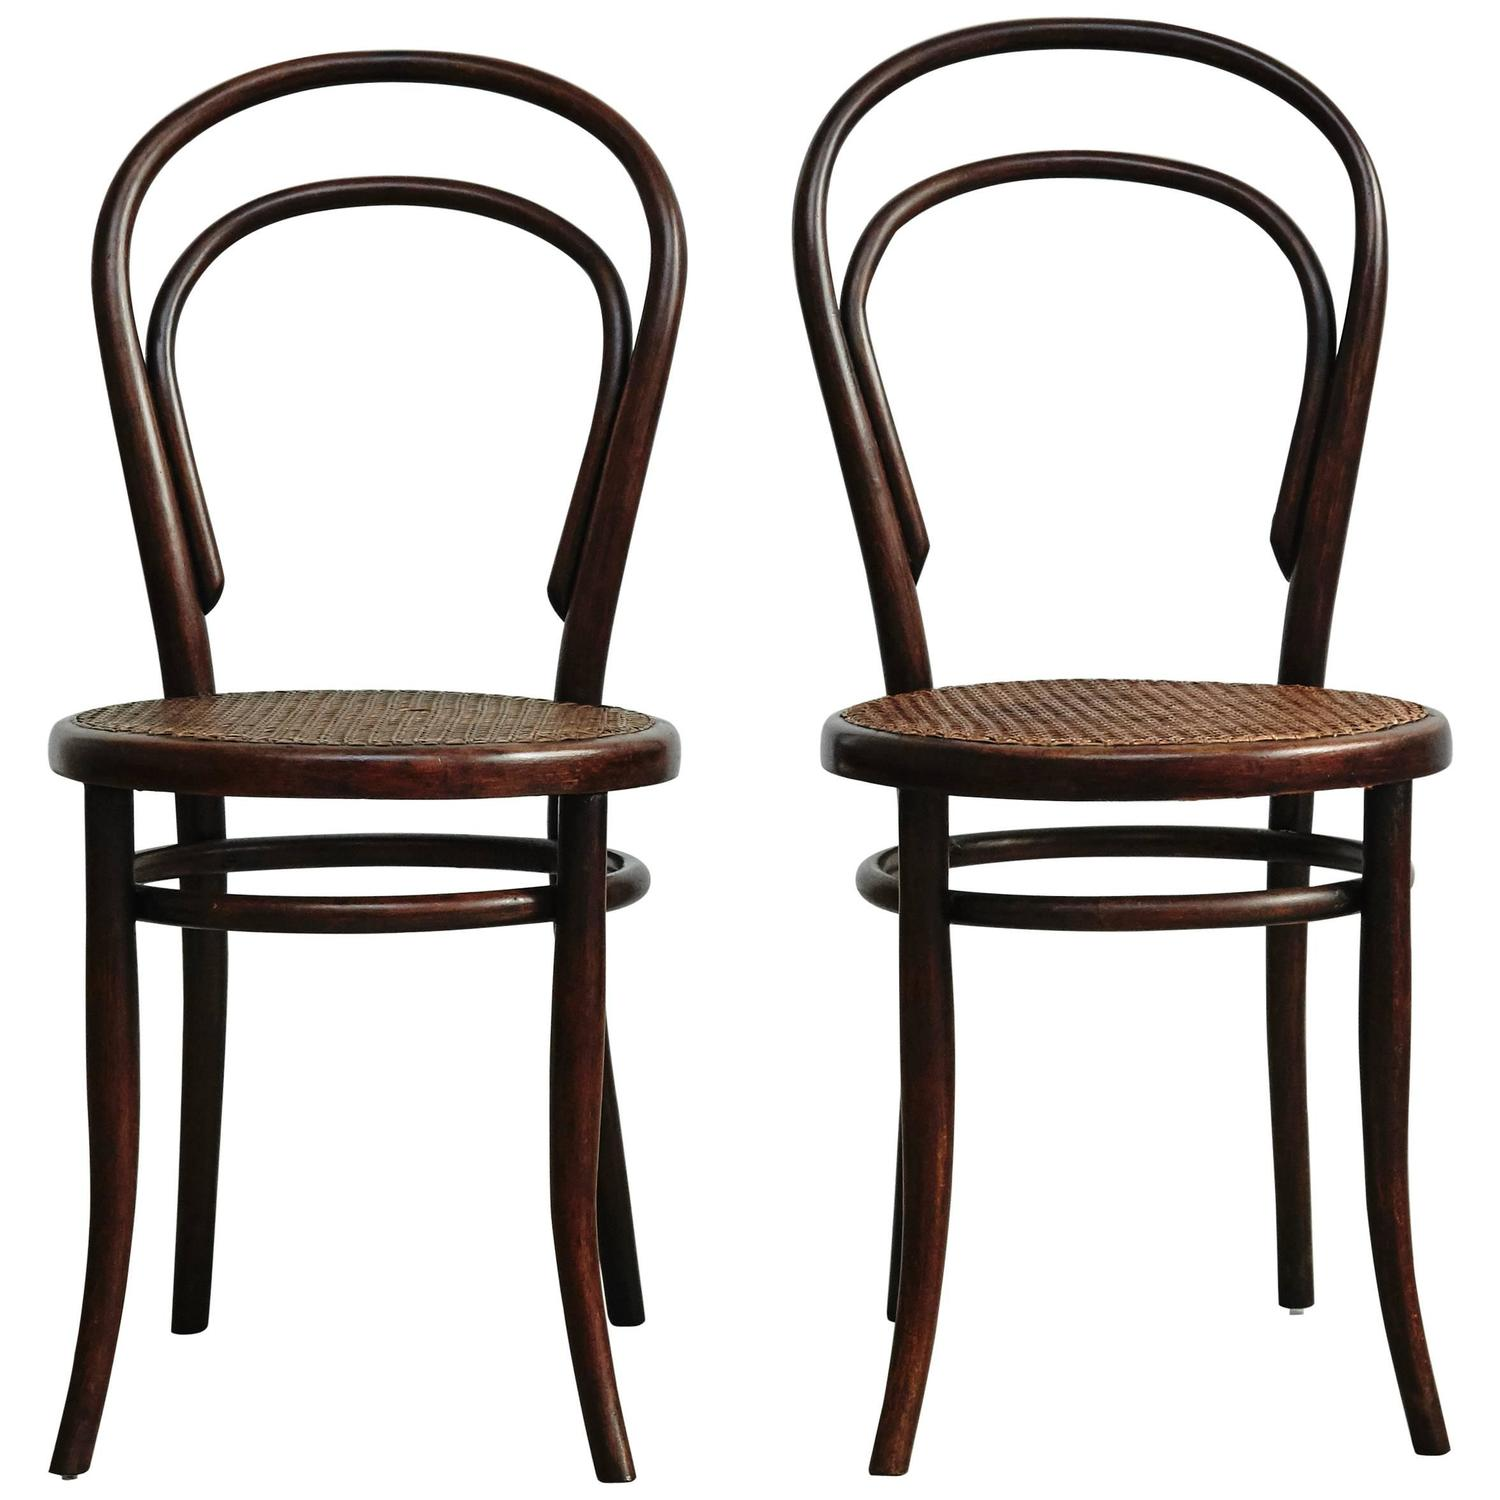 thonet chair styles crown royal pair of chairs in the style by unknown designer